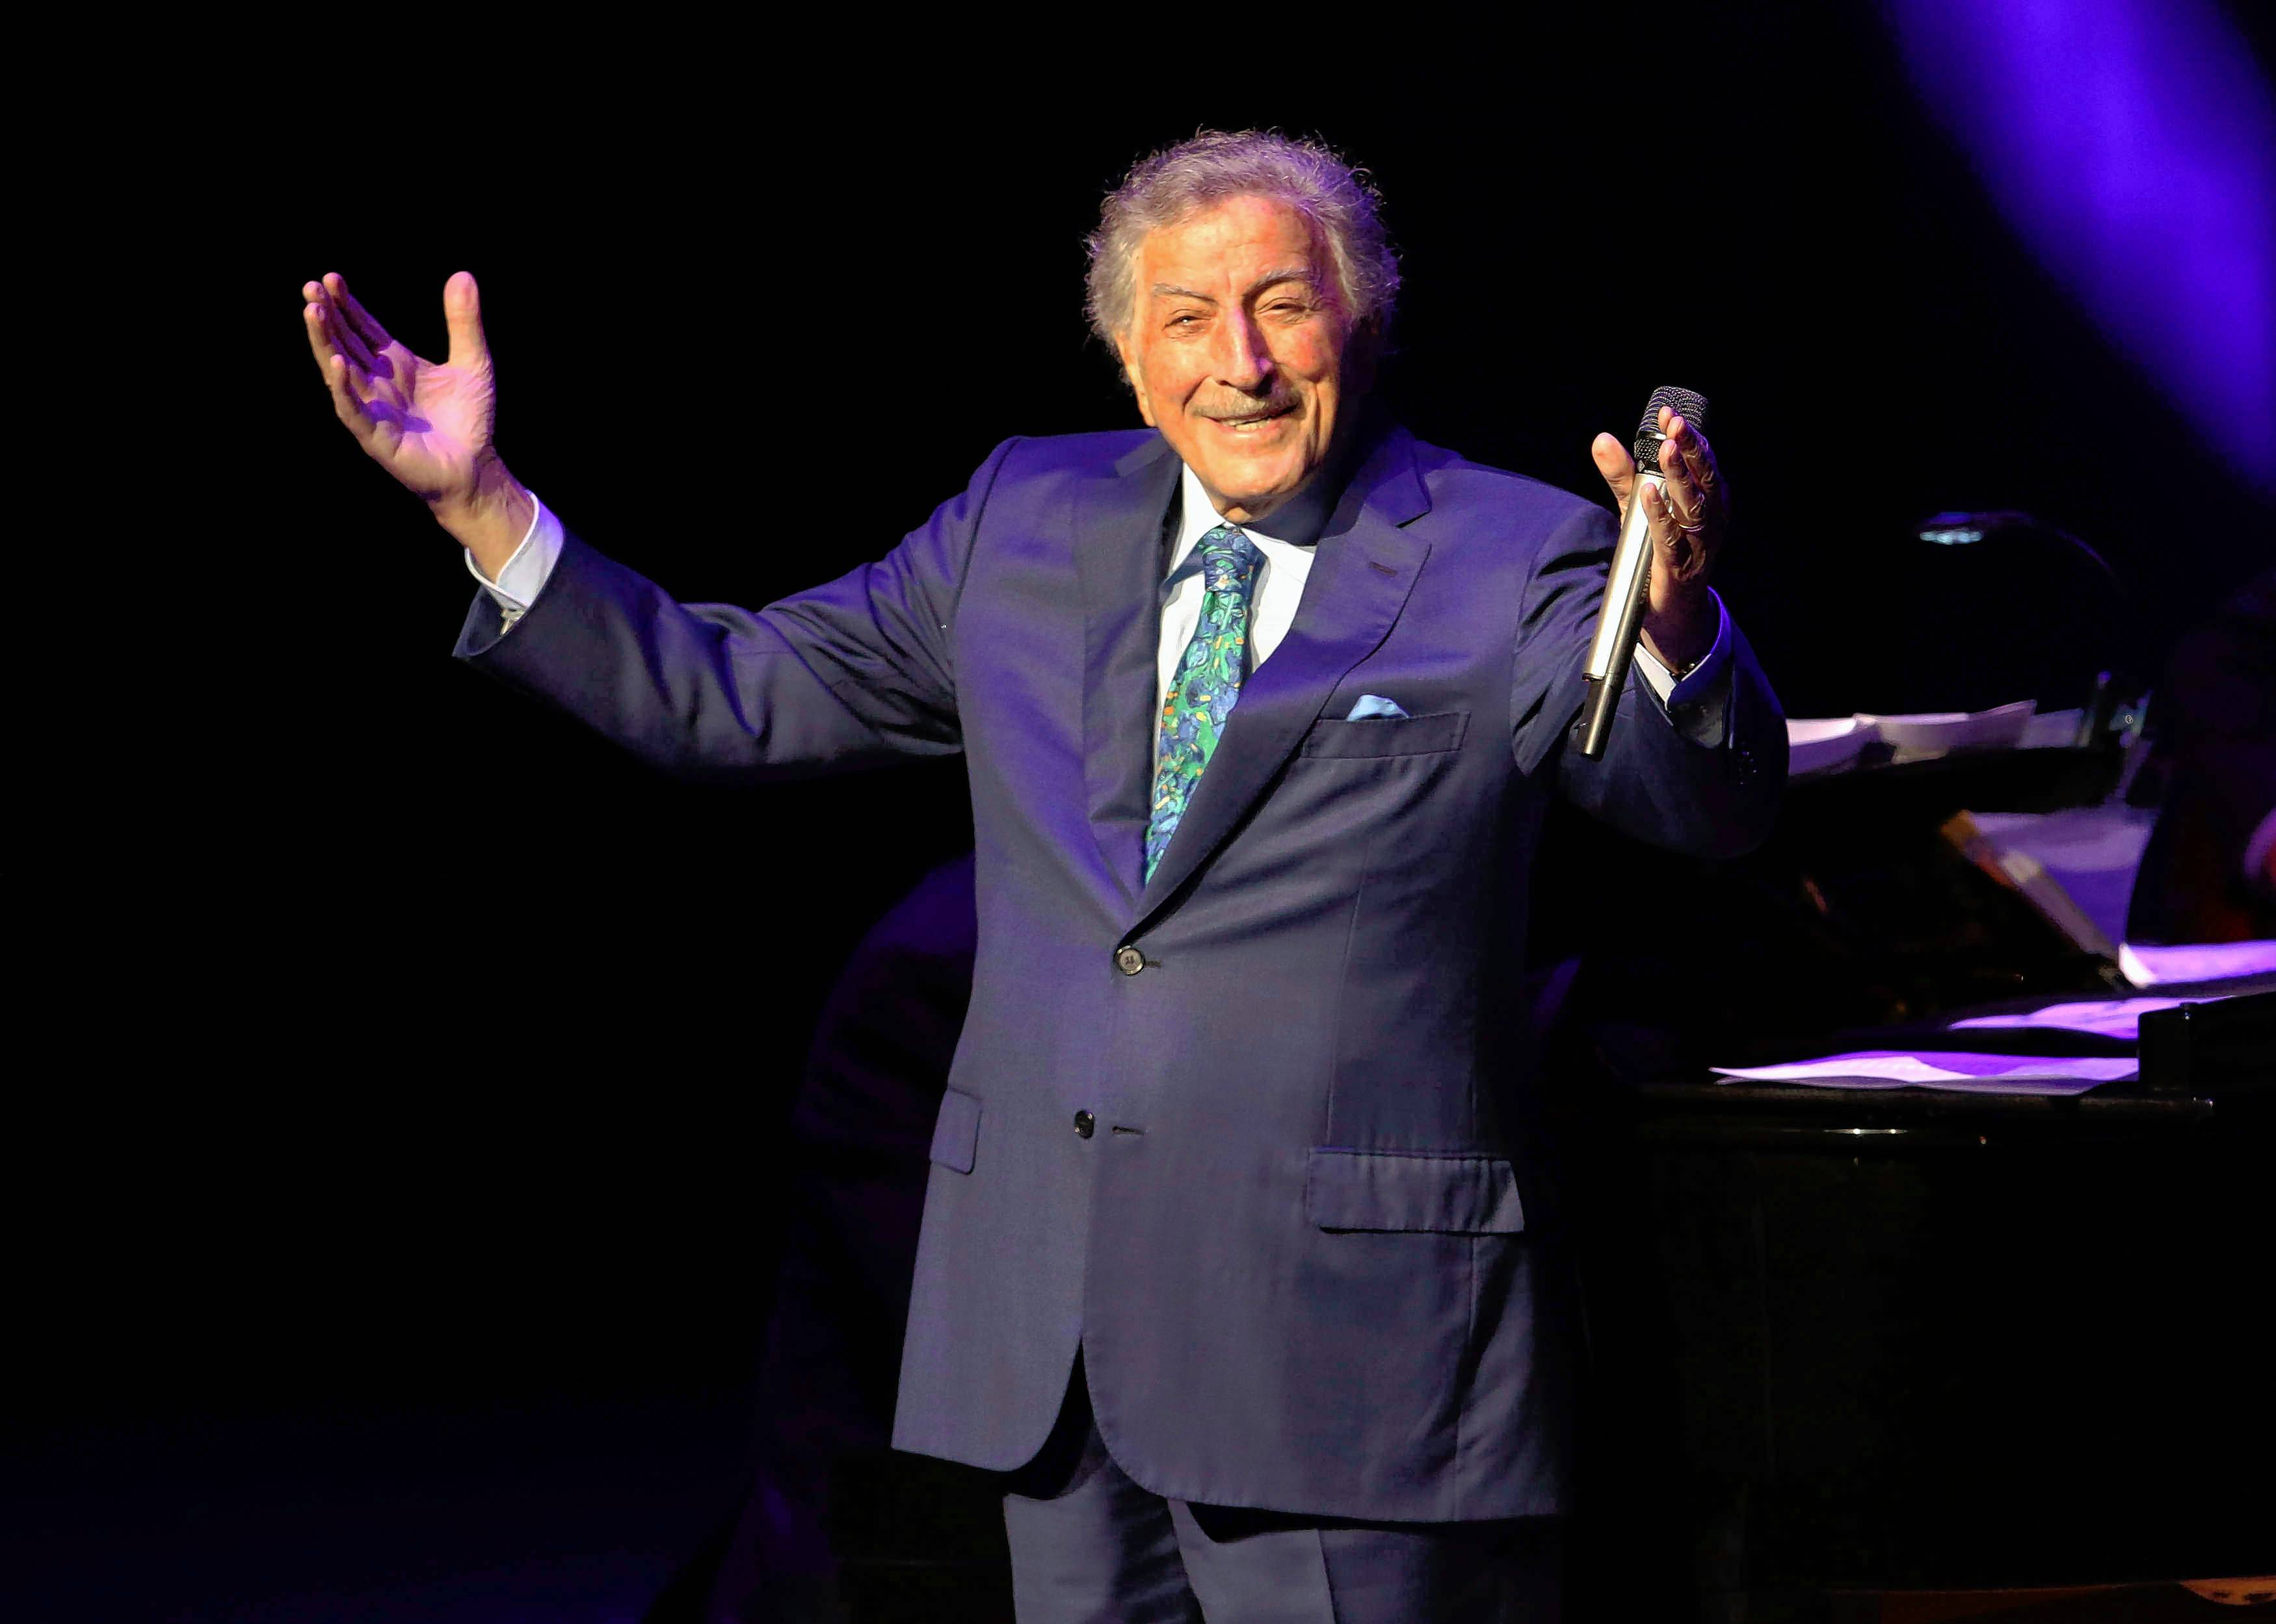 Tony Bennett and his daughter, Antonia, return Saturday, Sept. 8, to perform at Ravinia in Highland Park.